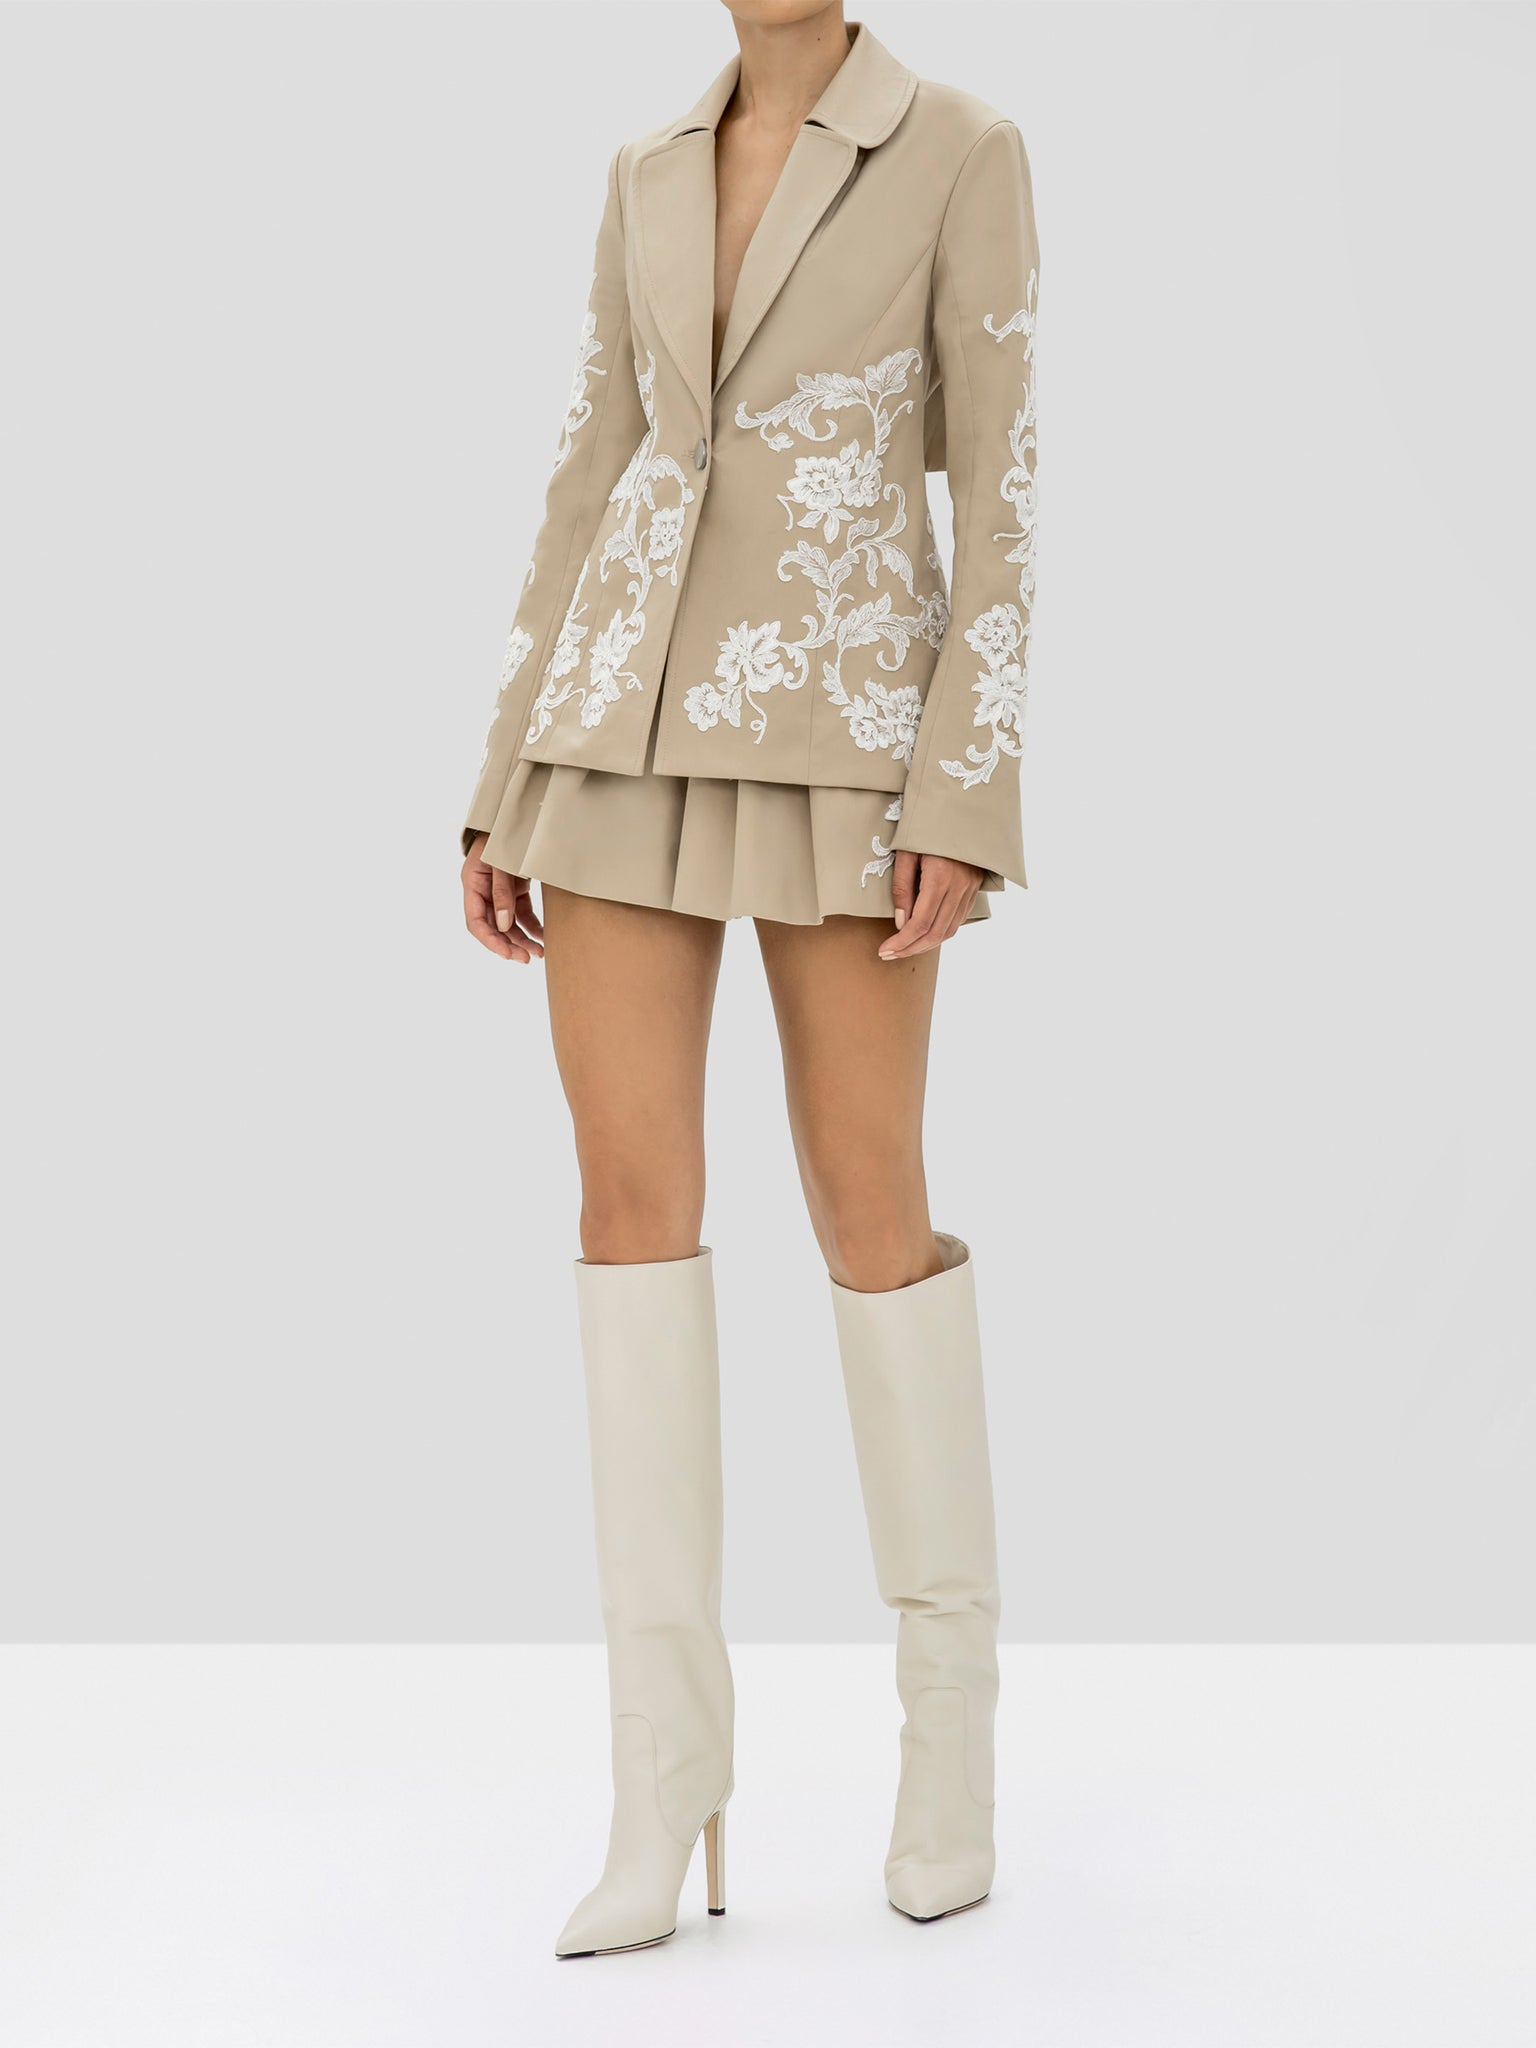 Alexis Cyrano Jacket and Gerona Shorts in Tan from the Holiday 2019 Ready To Wear Collection